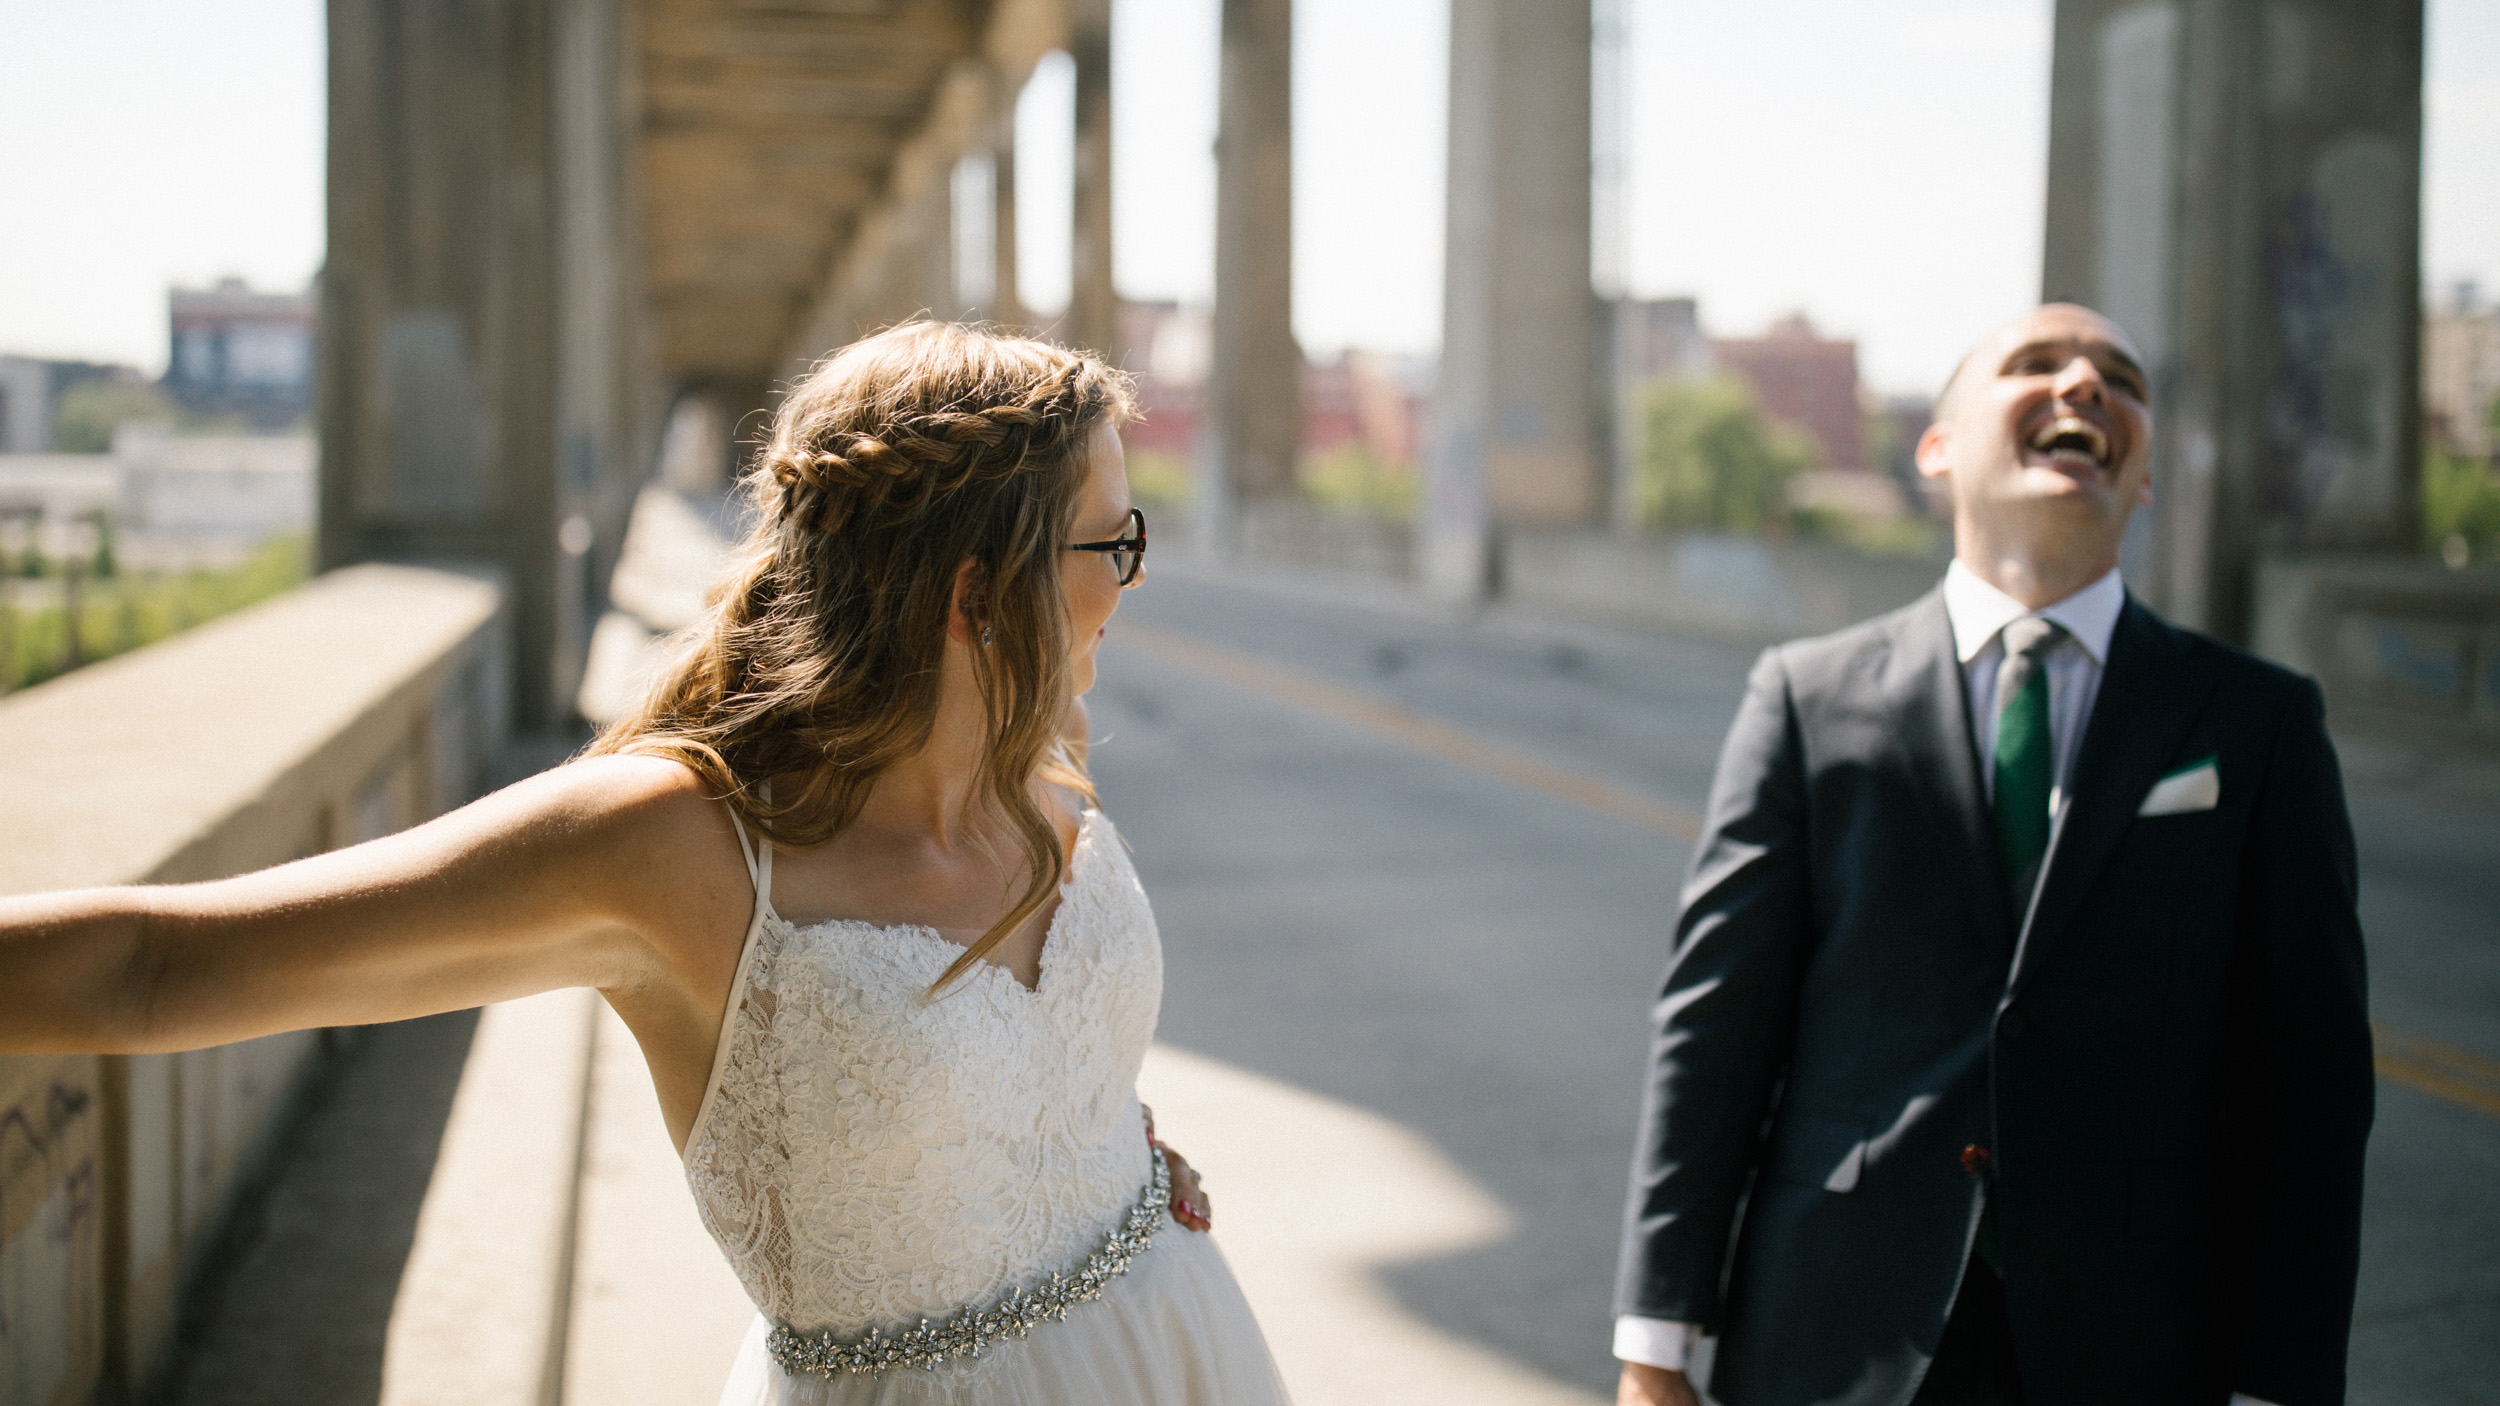 alec_vanderboom_john_micahel_lucy_kansas_city_wedding_photographer-0048.jpg